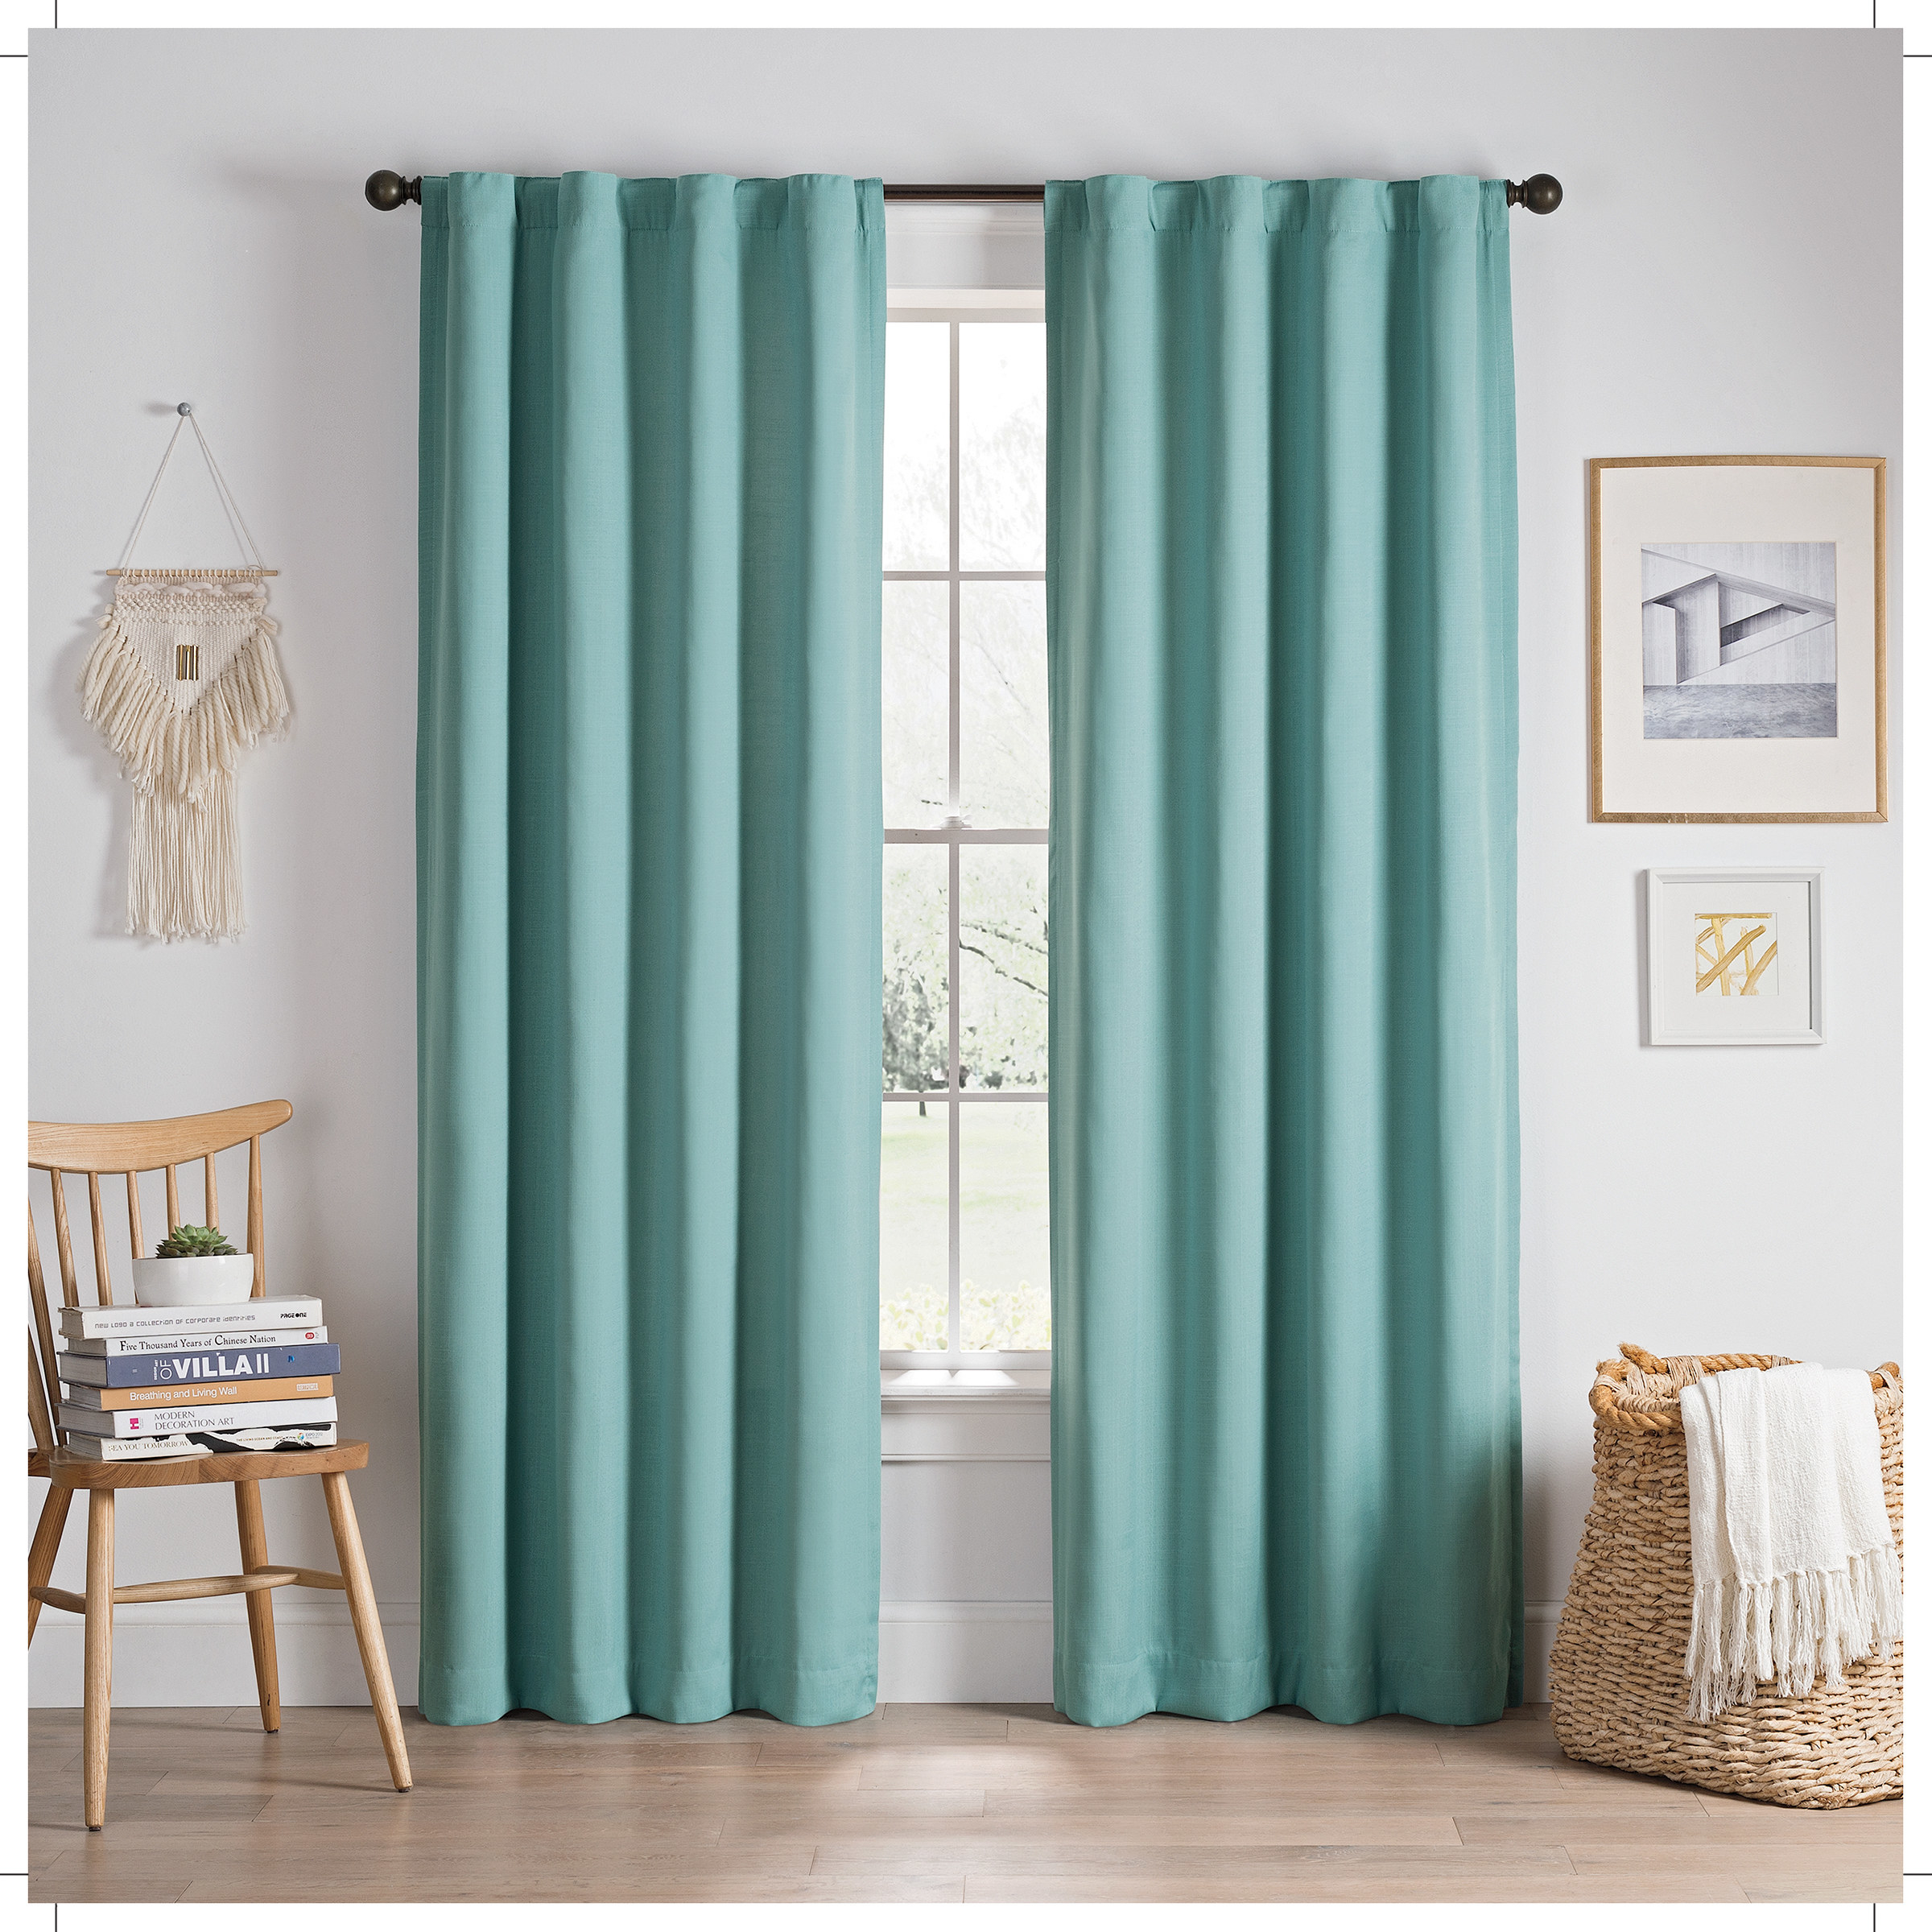 An aqua color set of curtains hanging around a window